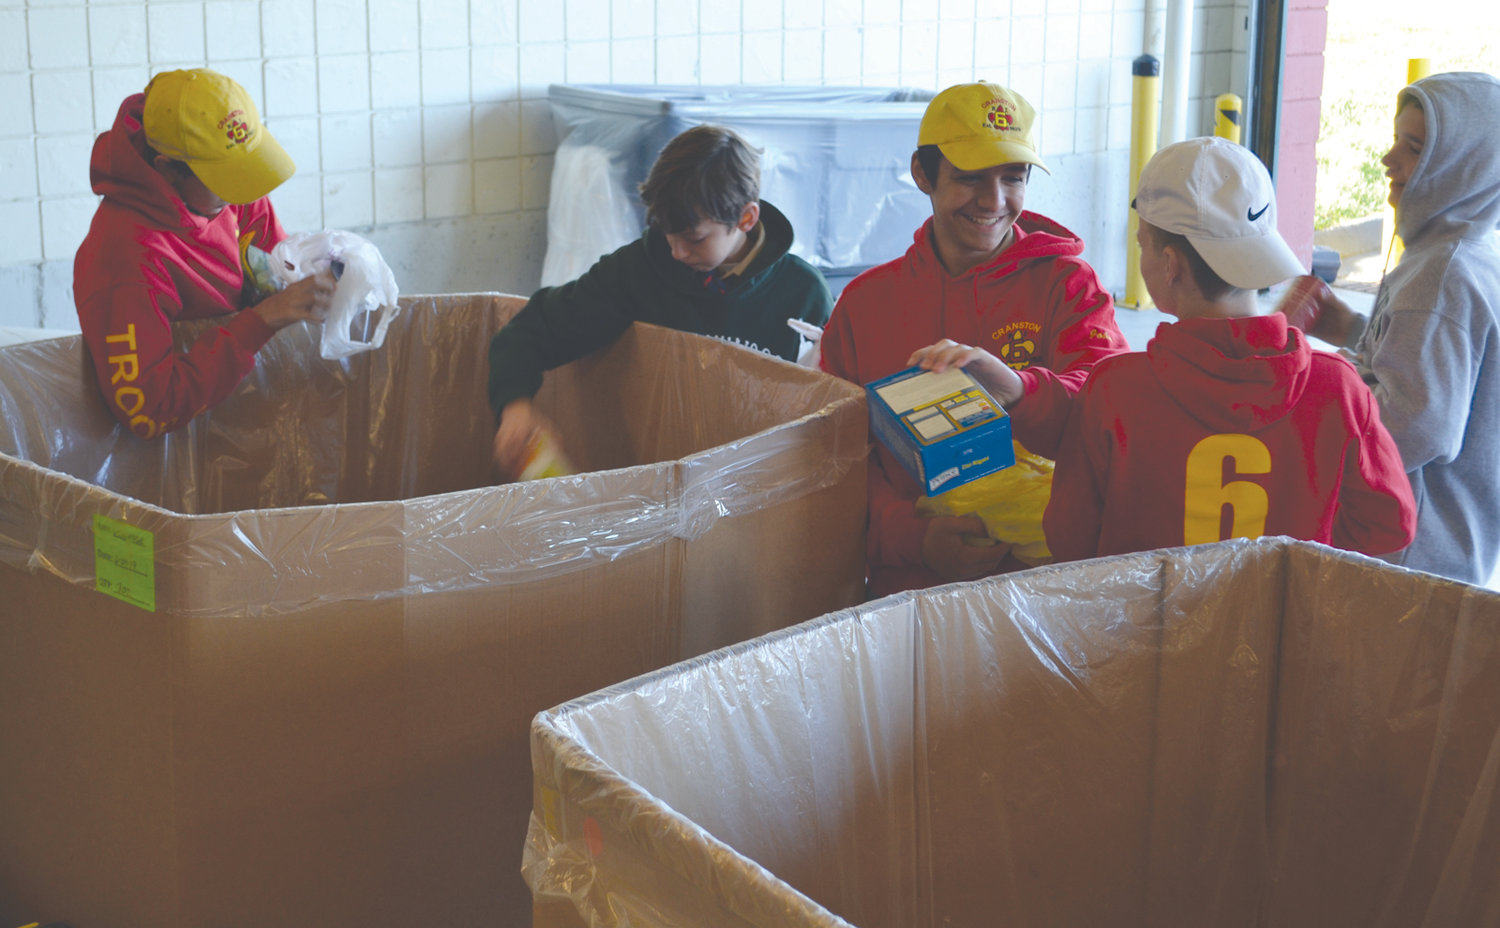 GIVING BACK: Scouts from Cranston Troops 6 and 66 were among those taking part in the collection at the Rhode Island Community Food Bank on Saturday as part of the Scouting for Food drive.